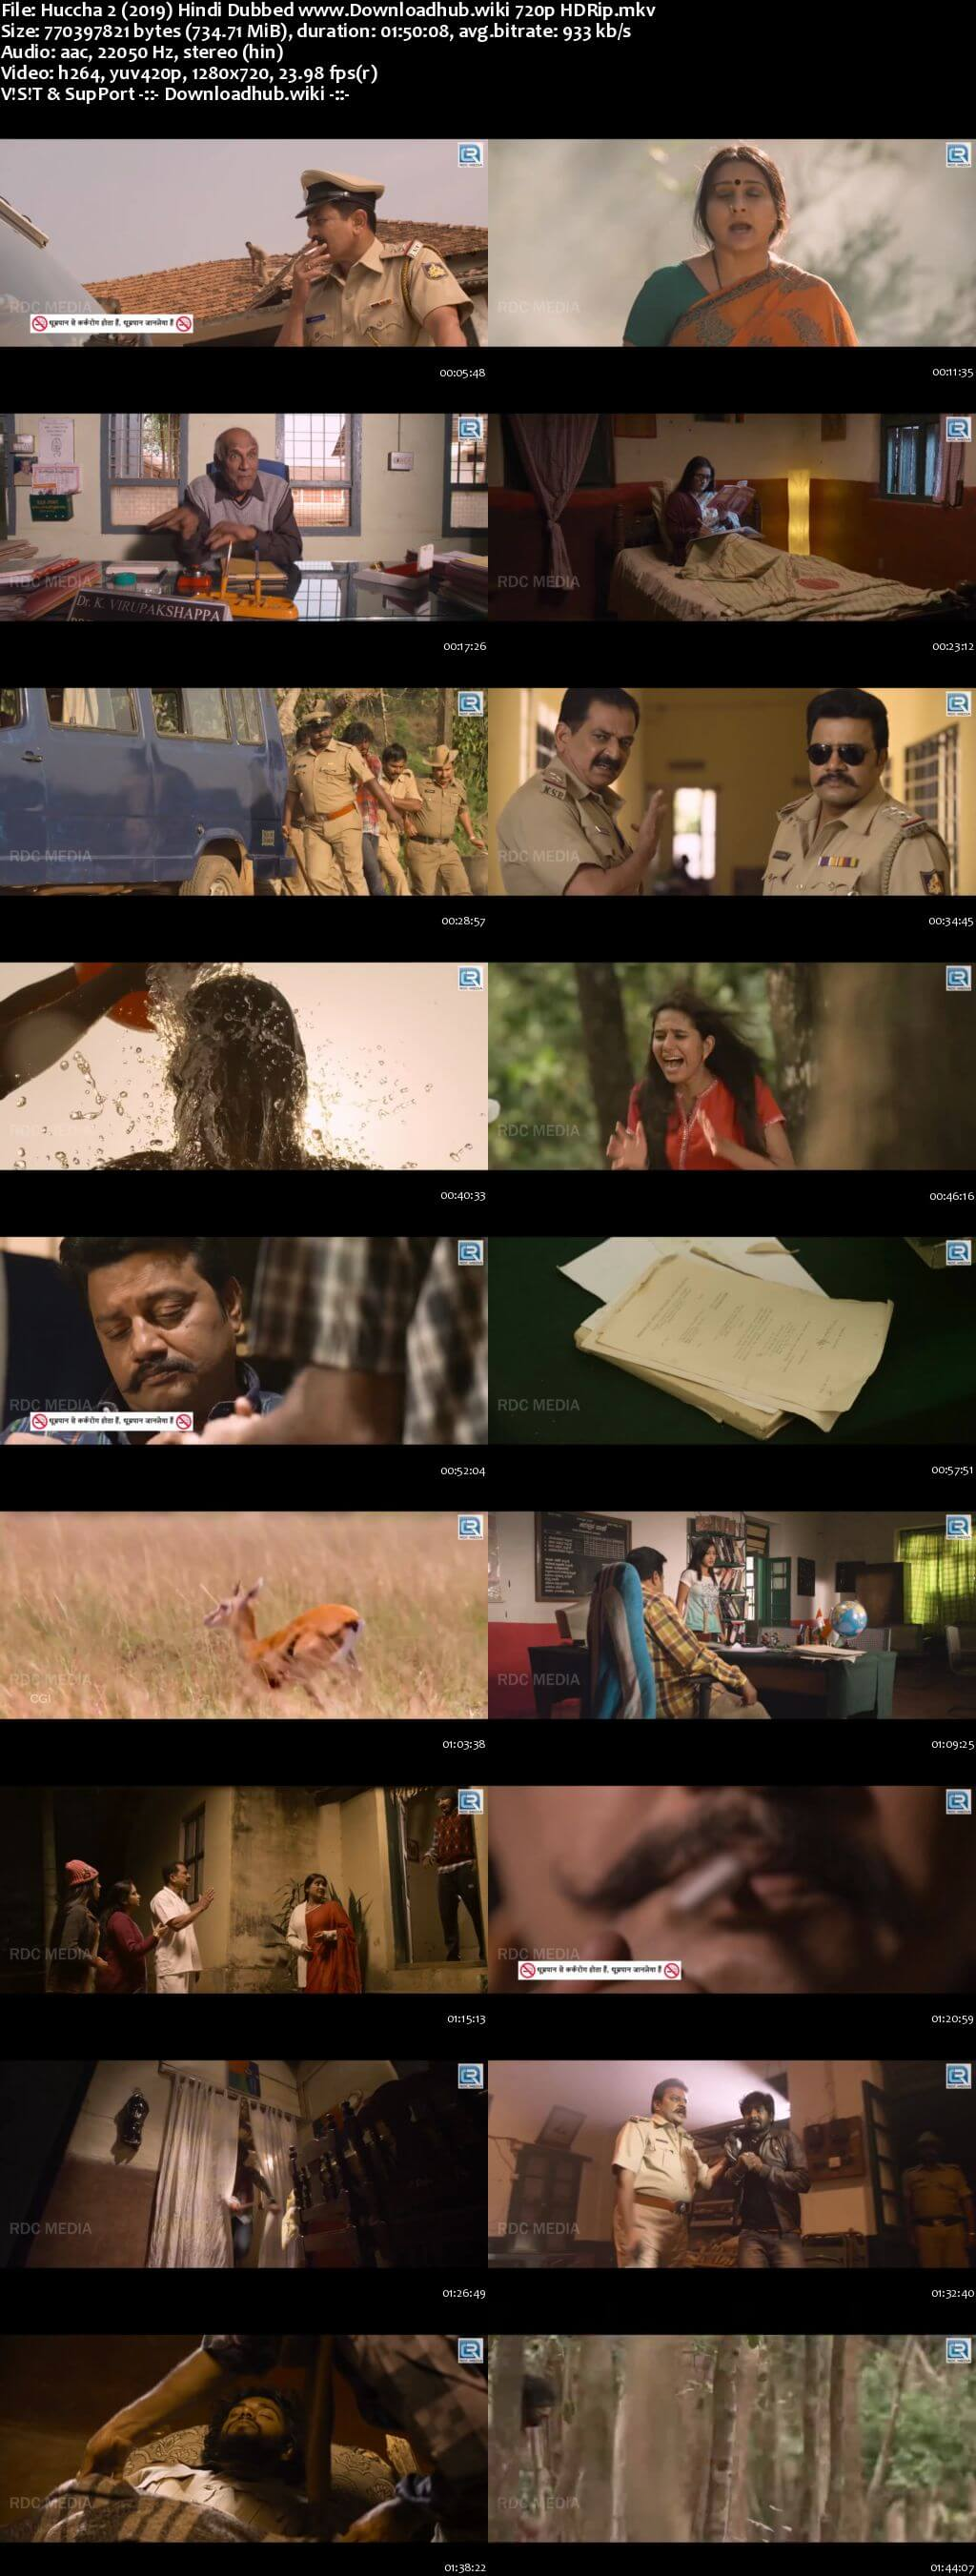 Huccha 2 2019 Hindi Dubbed 720p HDRip x264